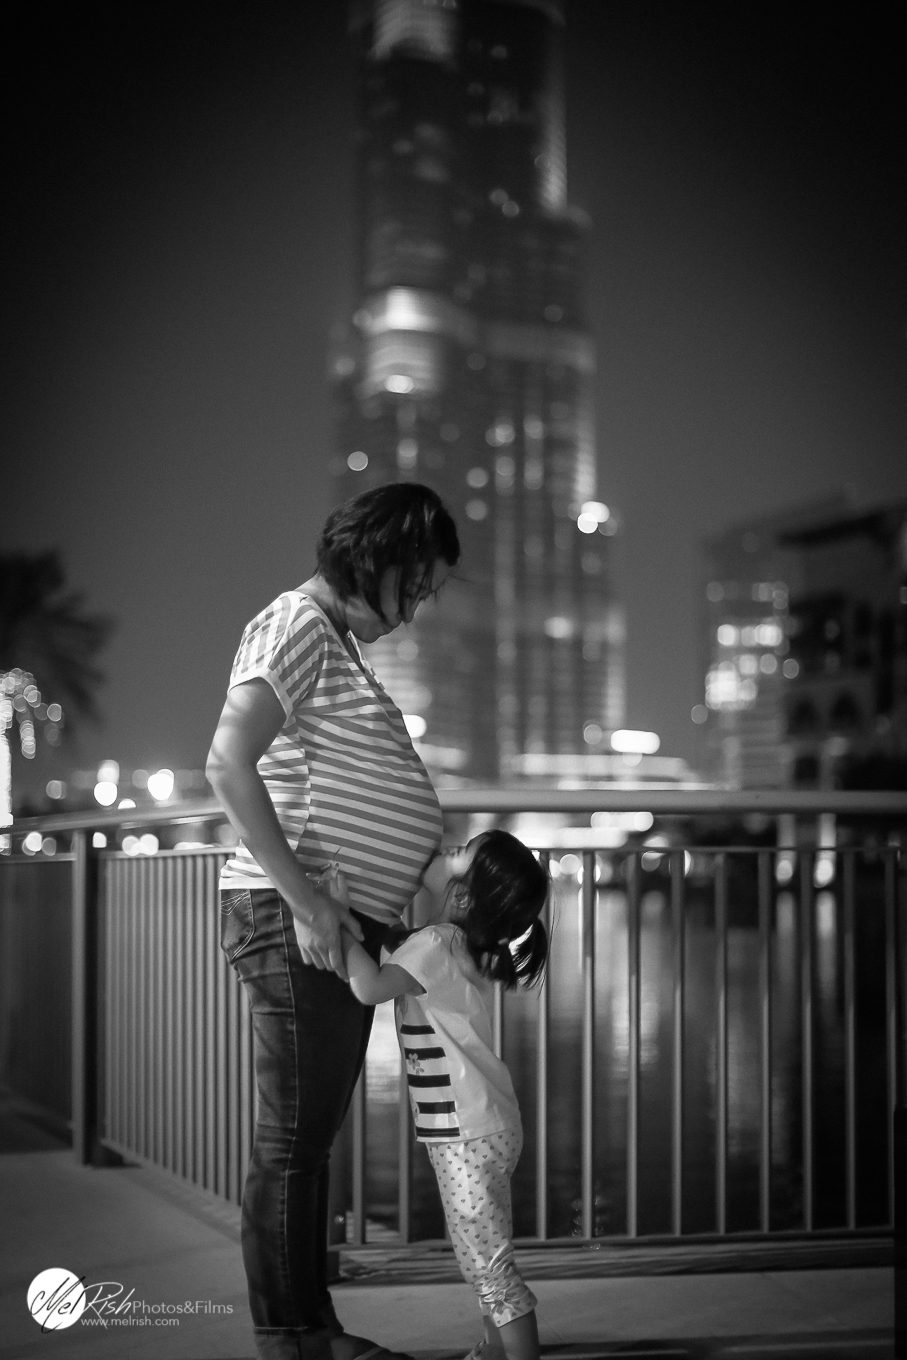 Dubai maternity in black and white